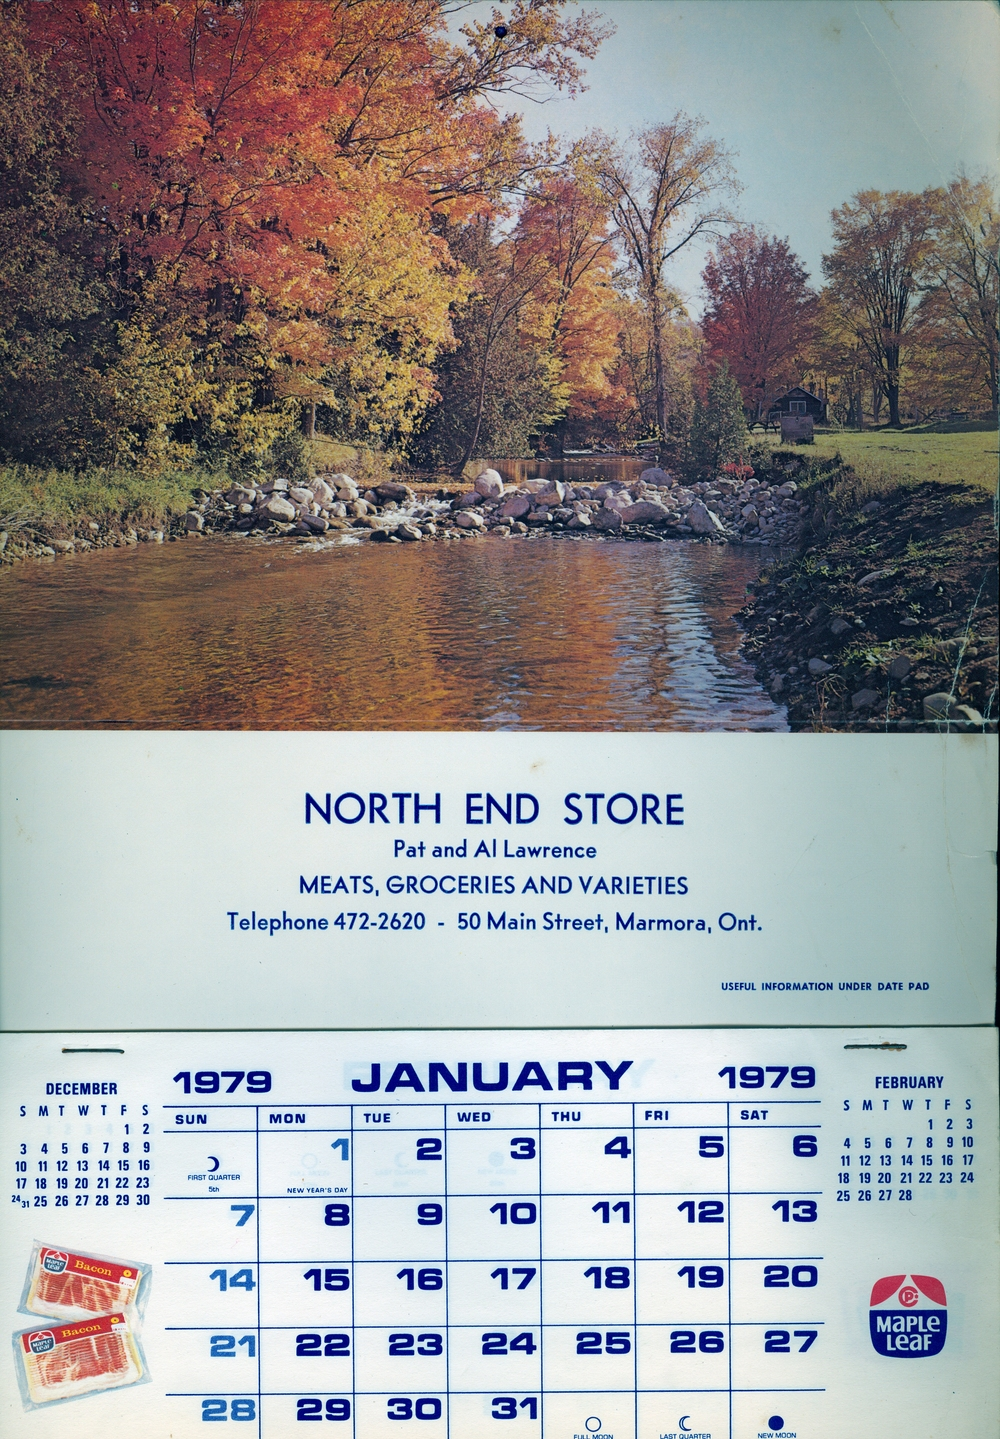 1979,  Marmora Business,  North End Store,  Pat & Al Lawrence.jpg